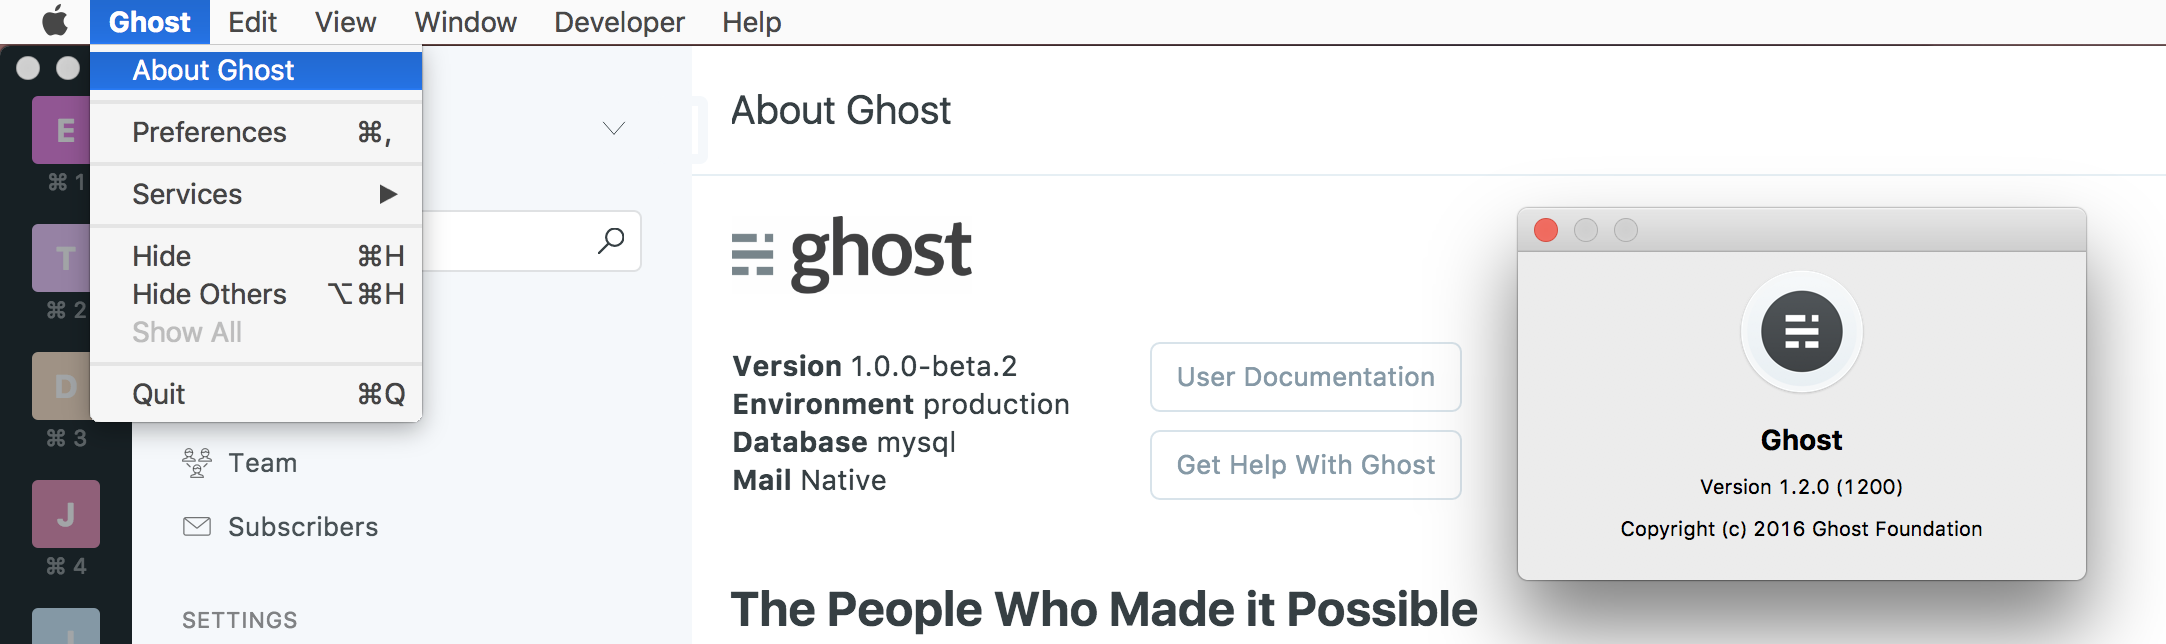 Add version software version number · Issue #277 · TryGhost/Ghost